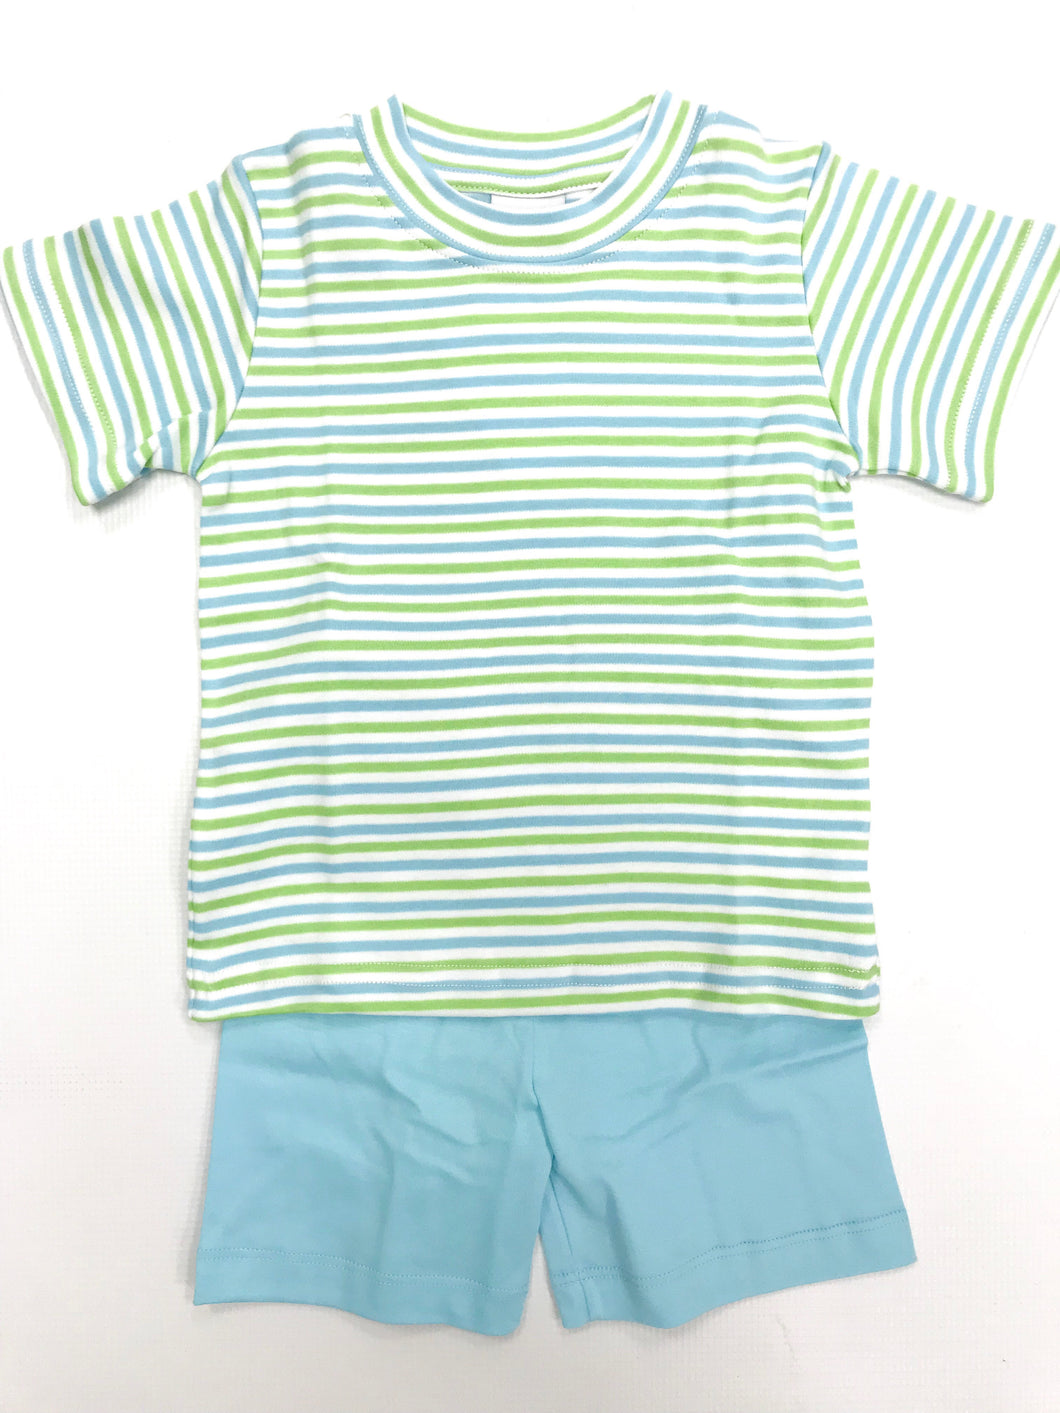 Aqua/Green Stripe Short Set